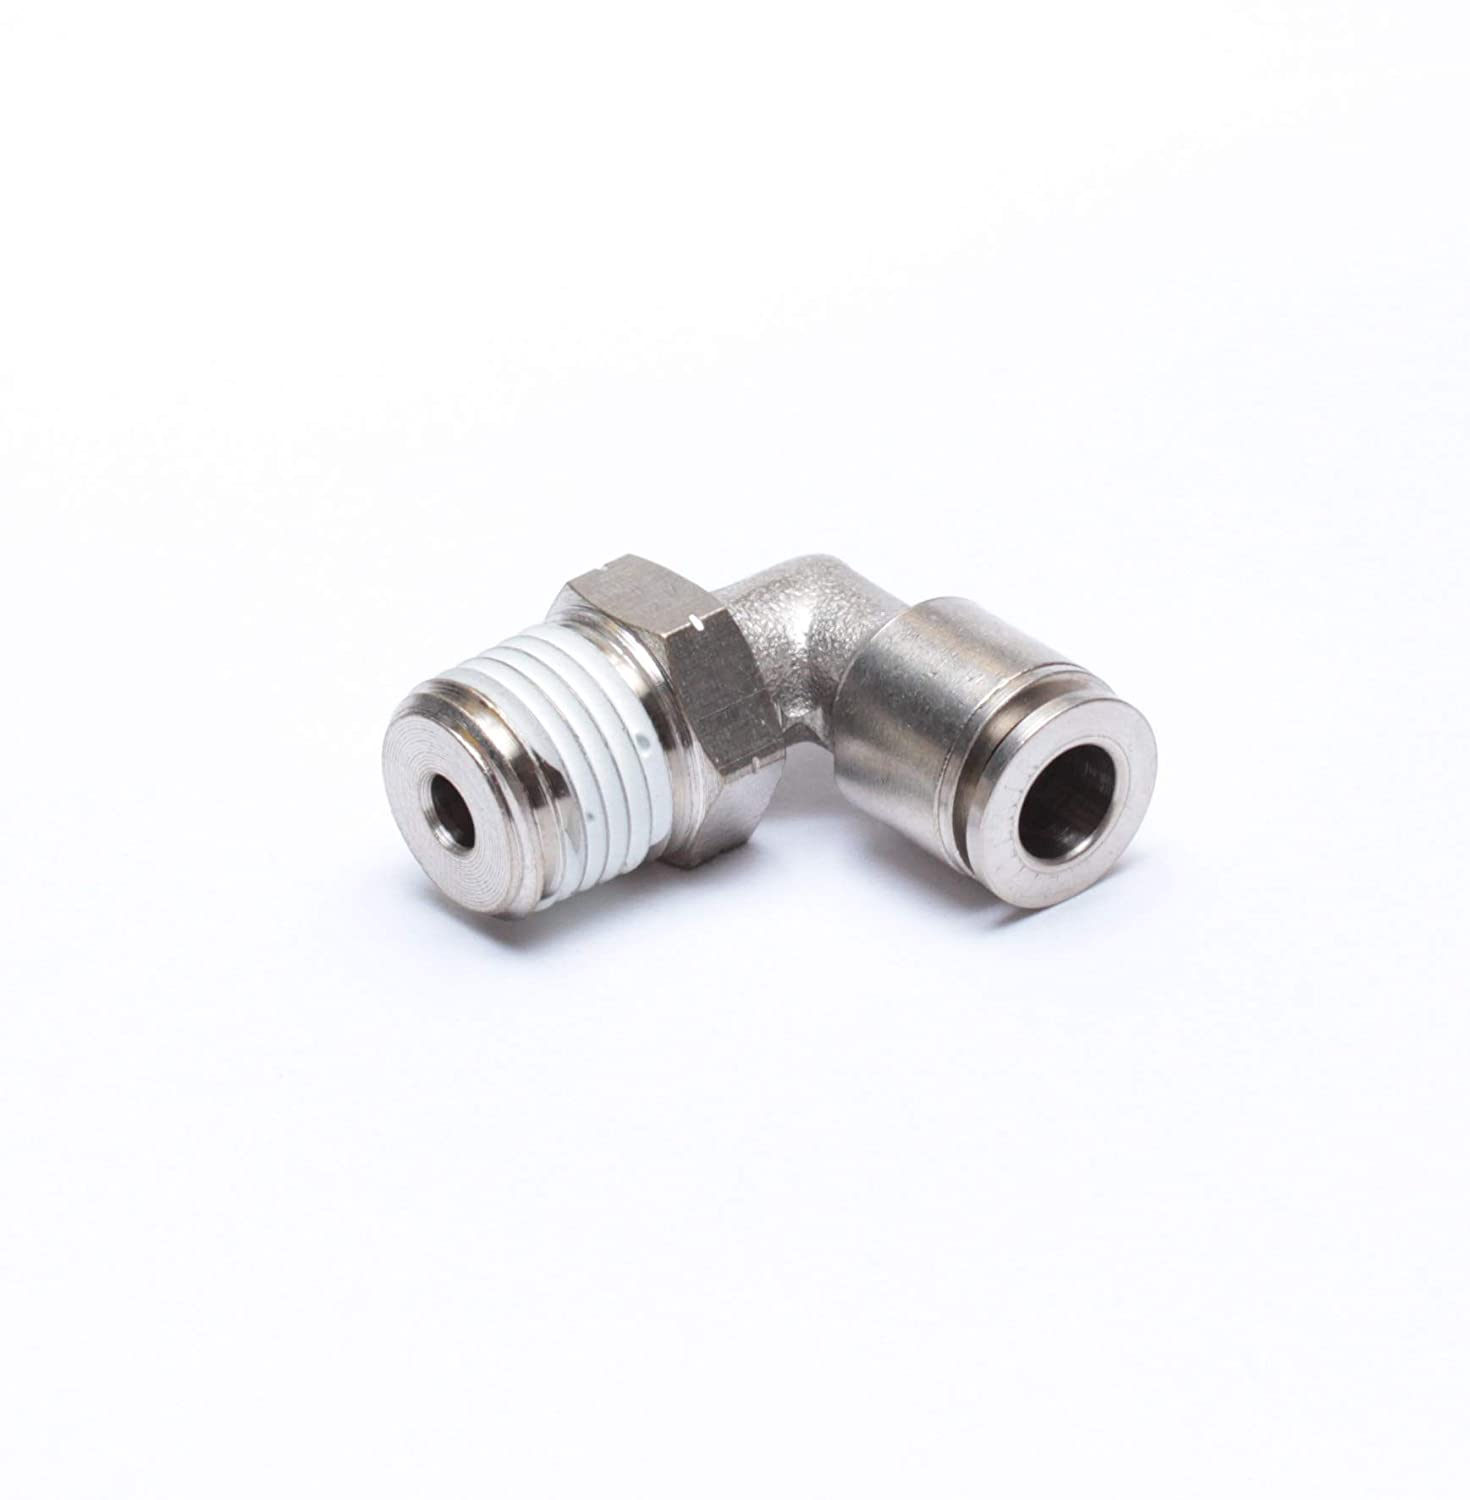 Beduan Brass BPL Push to Connect Air Fittings Elbow 3//8 Tube OD x 1//4 NPT Male 90/° Degree Adapter